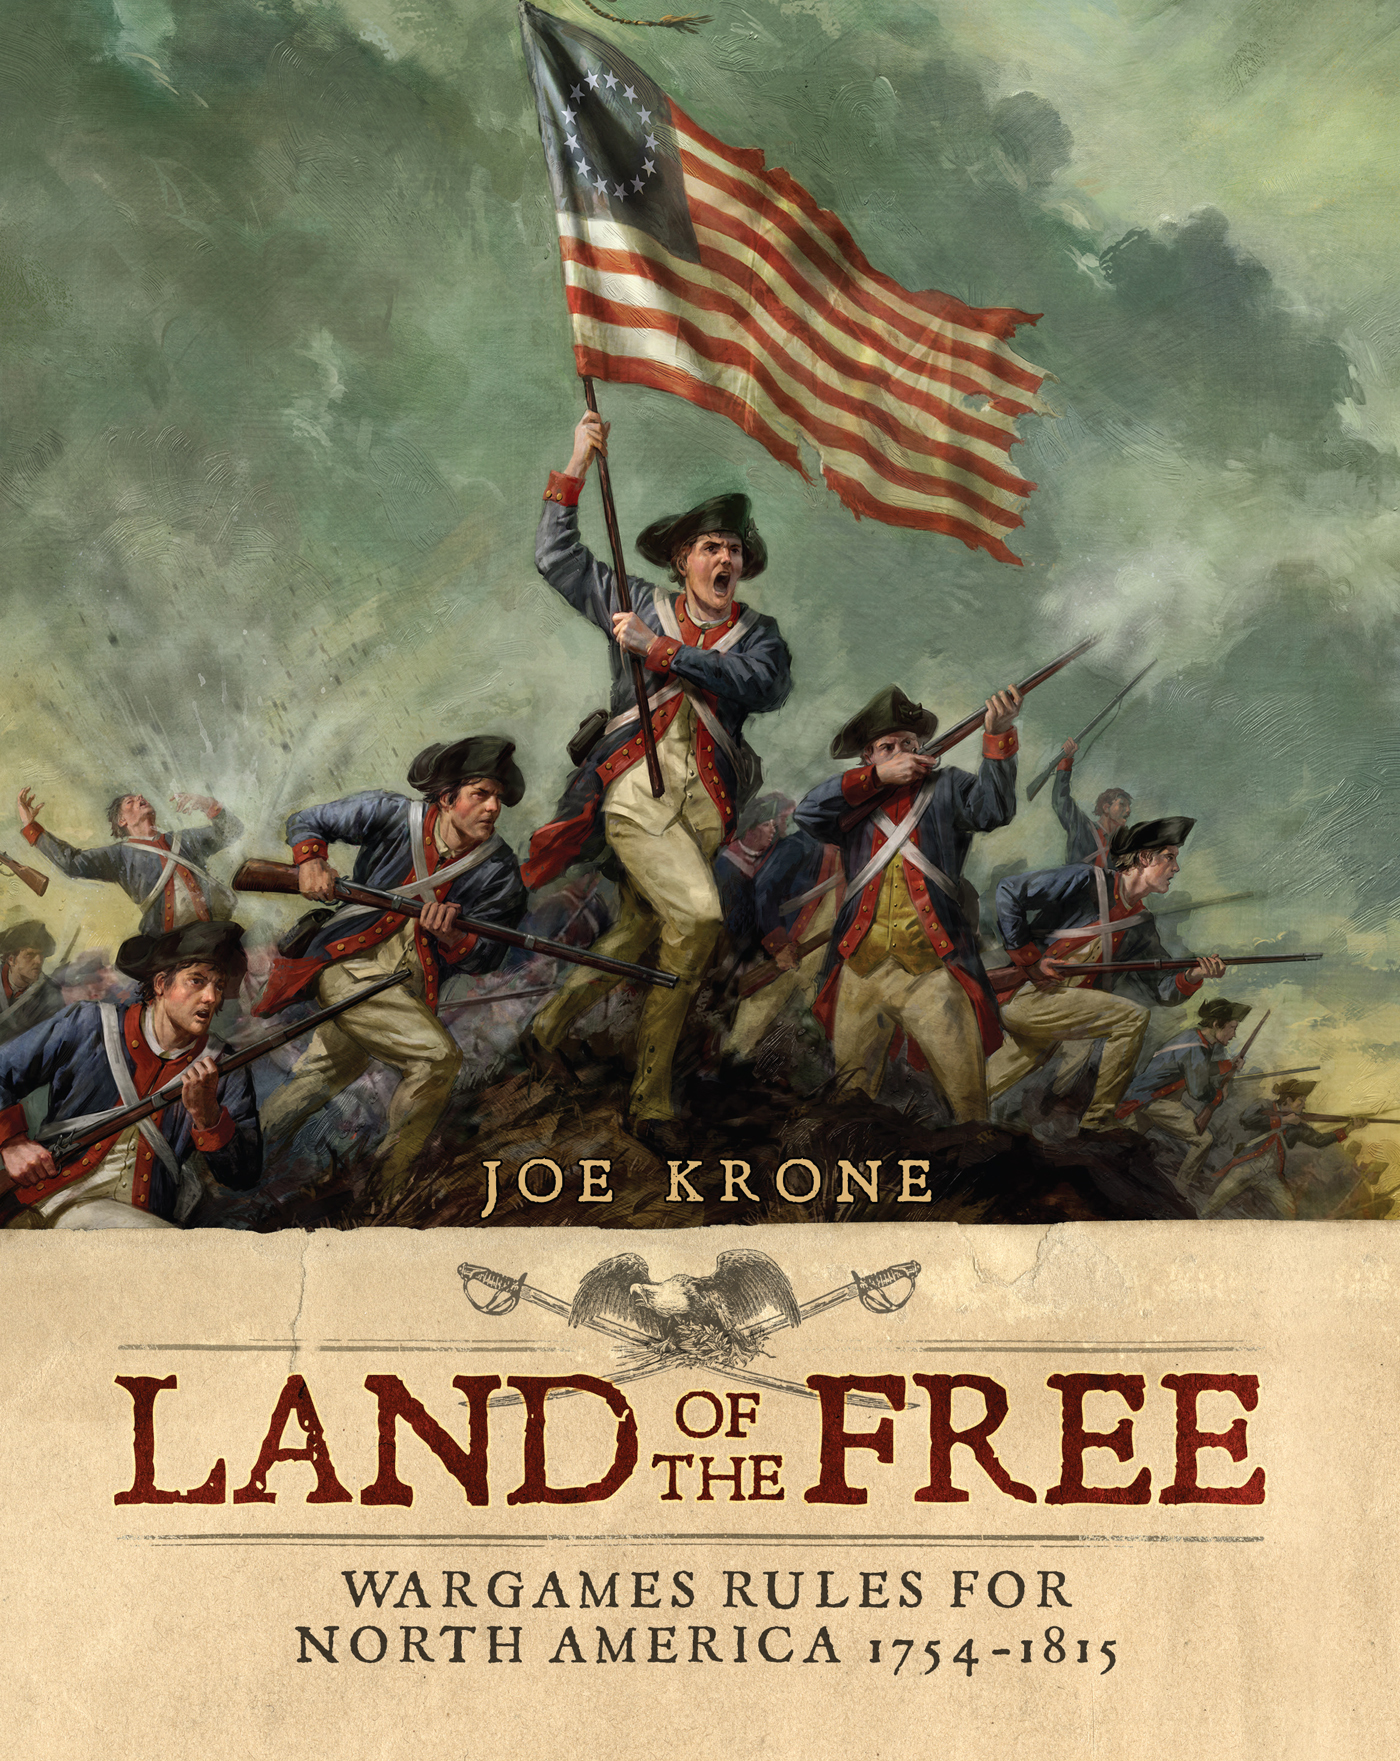 Land of the Free: Wargames Rules for North America 1754?1815